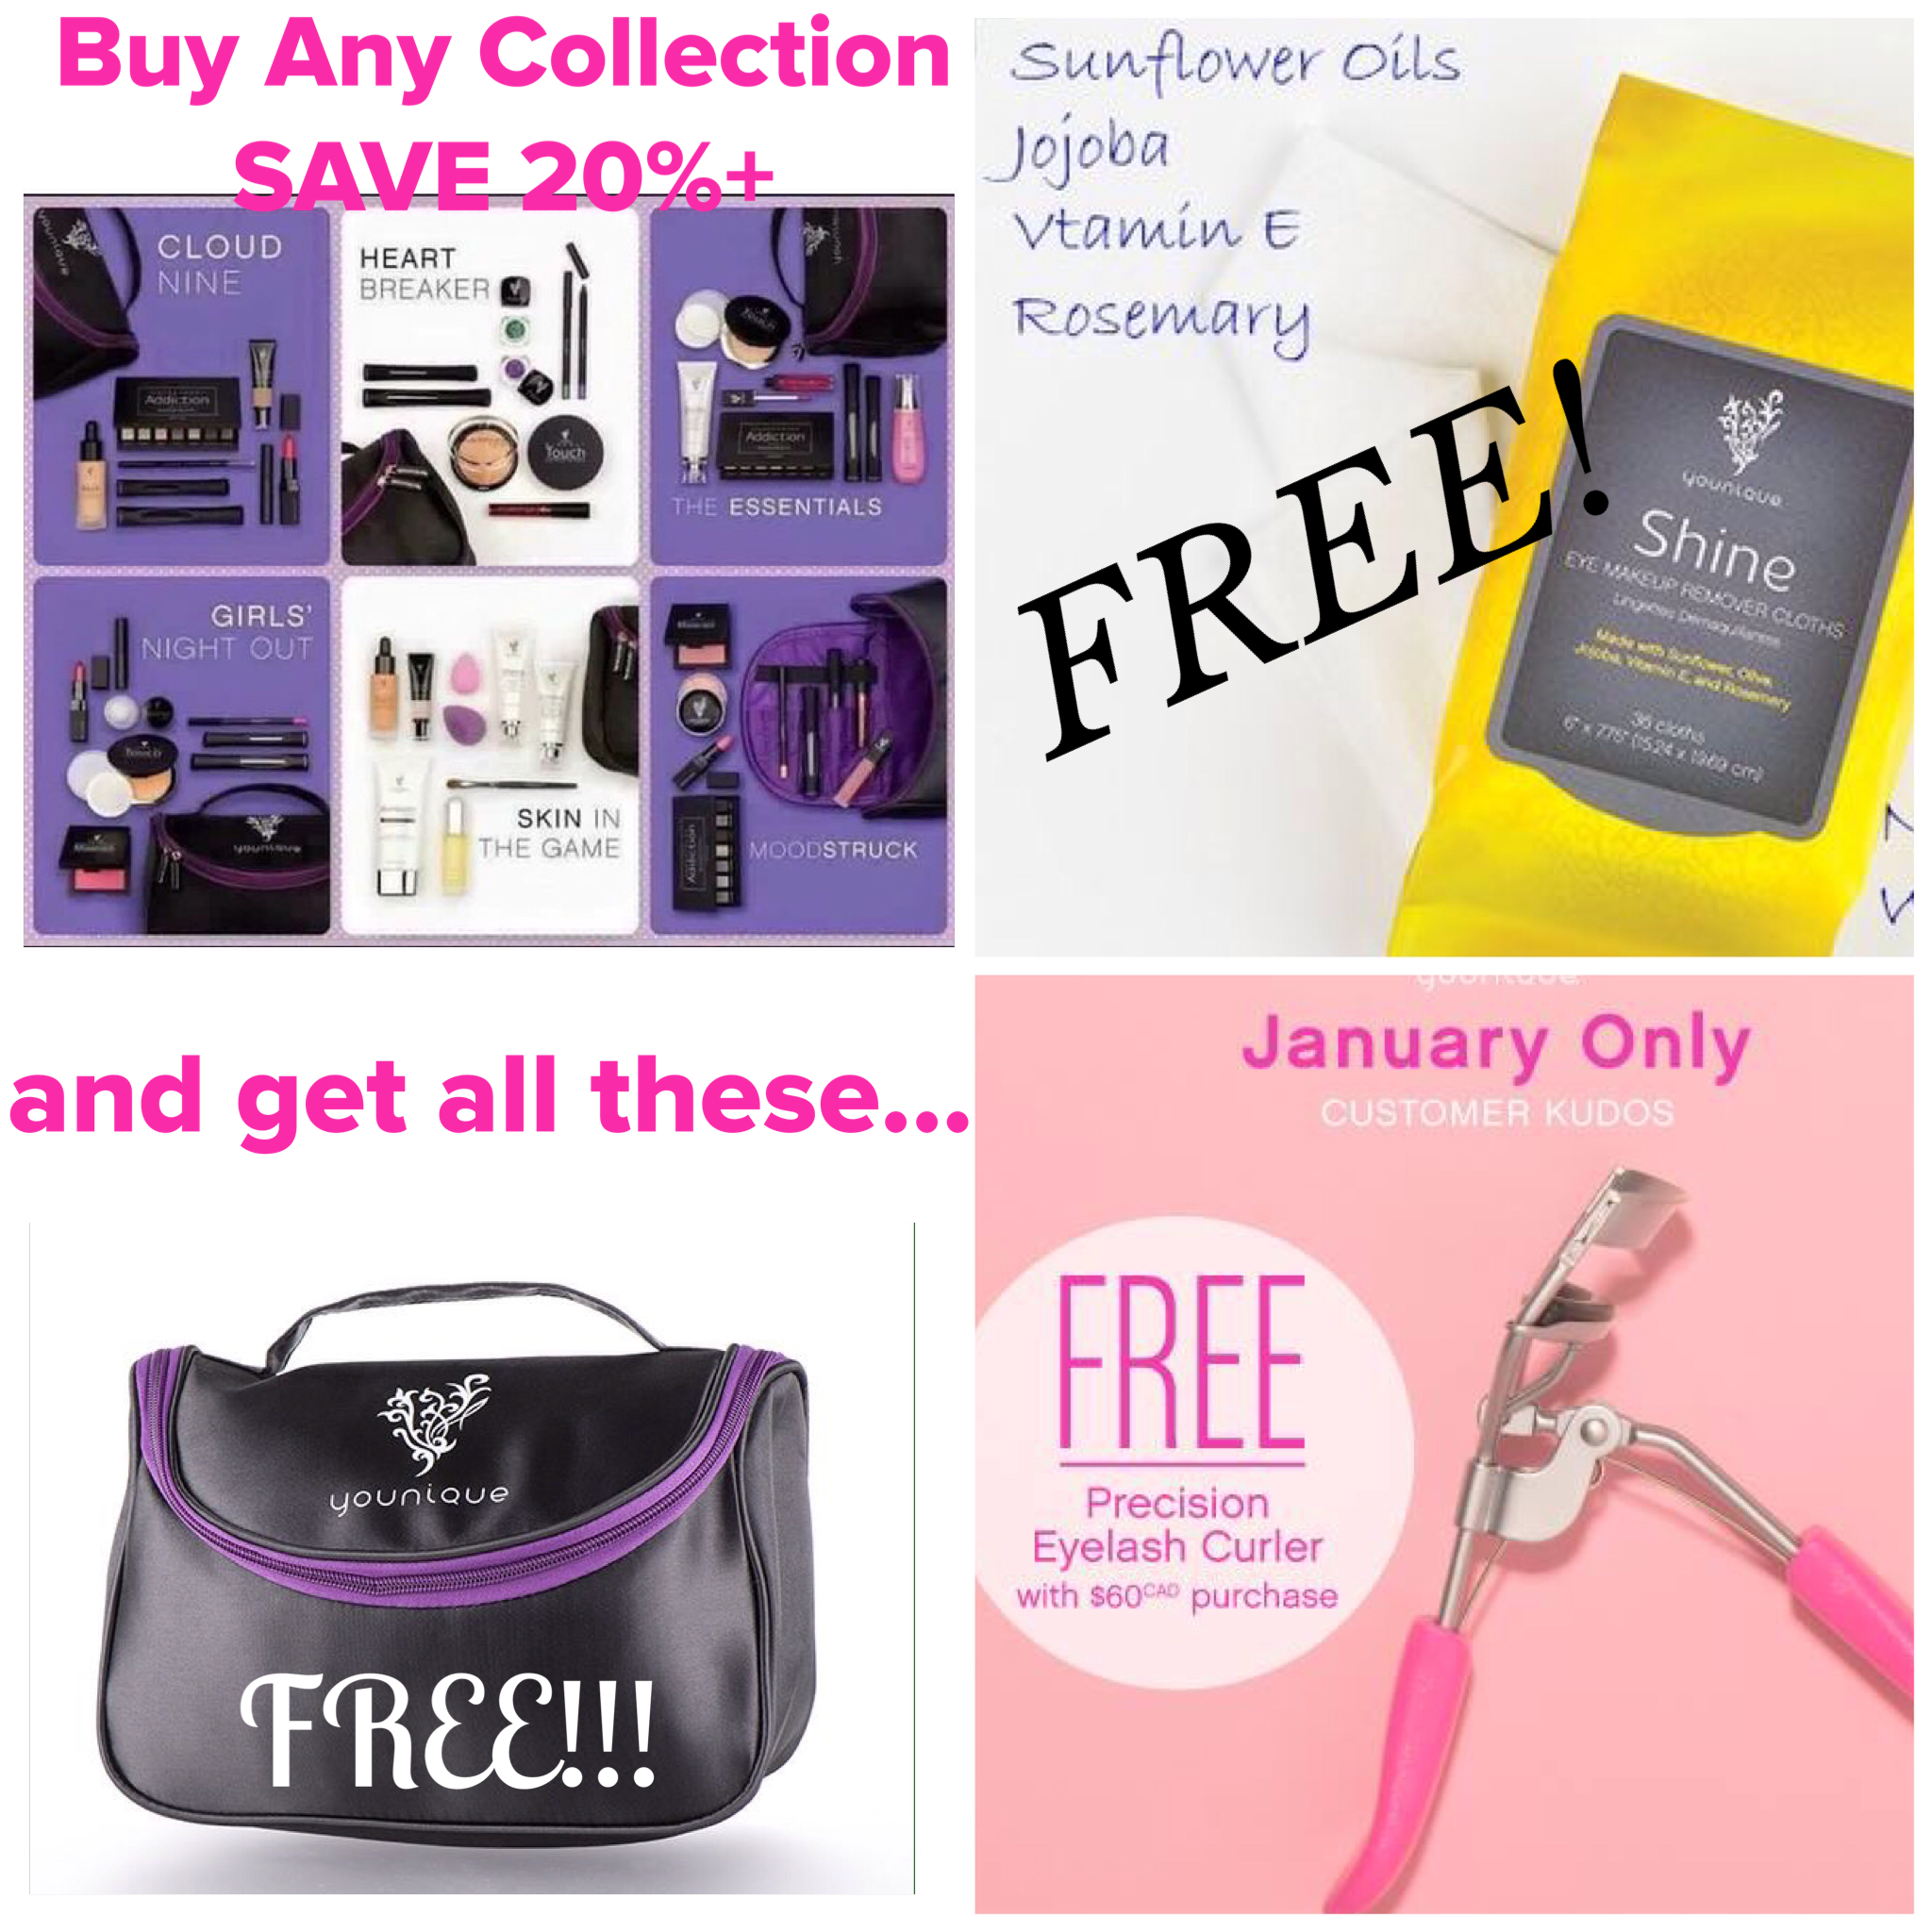 Get on this deal fast! Younique is giving FREE shine